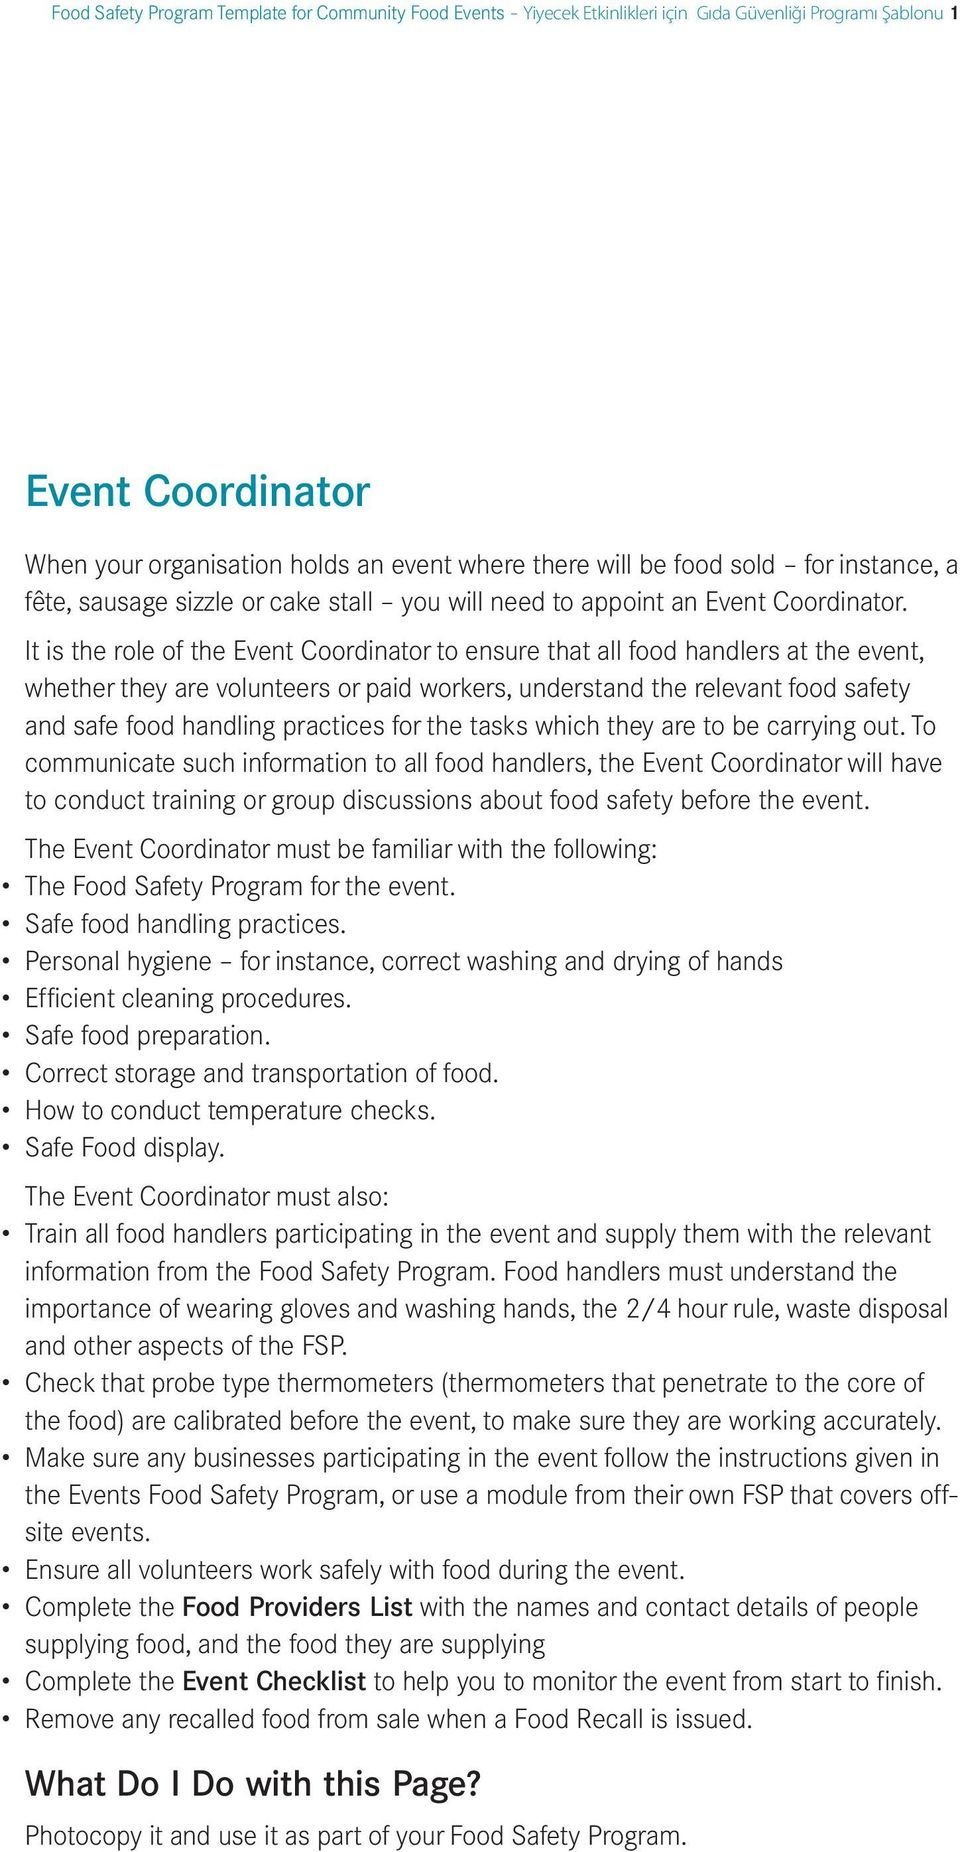 It is the role of the Event Coordinator to ensure that all food handlers at the event, whether they are volunteers or paid workers, understand the relevant food safety and safe food handling